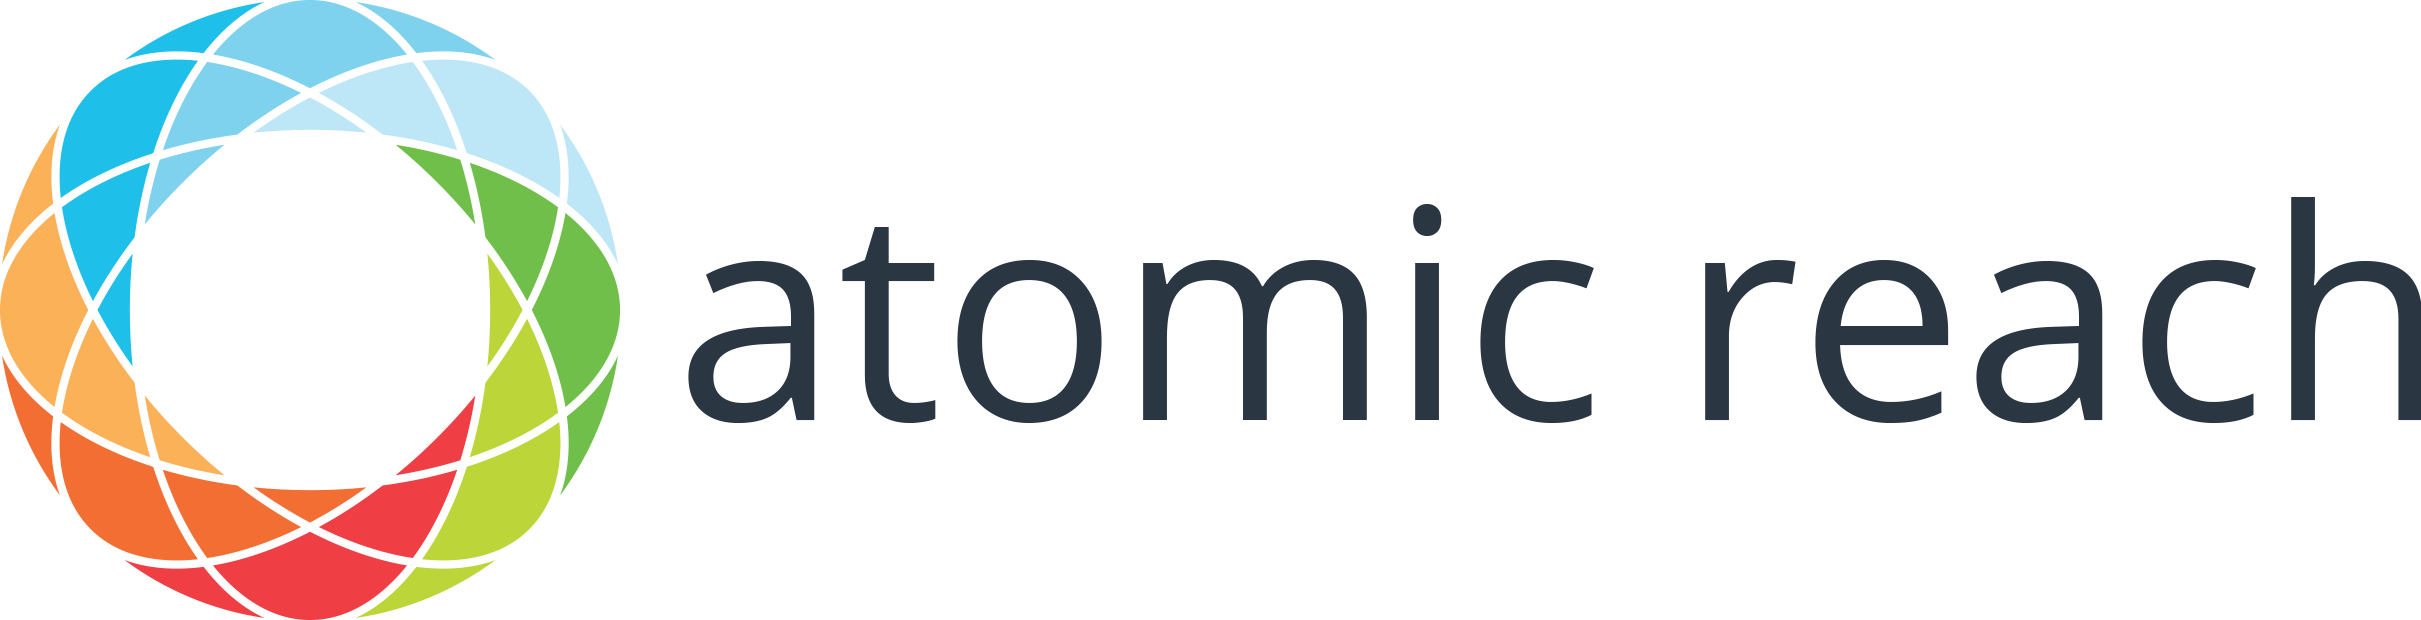 atomicreach-logo-navy-3